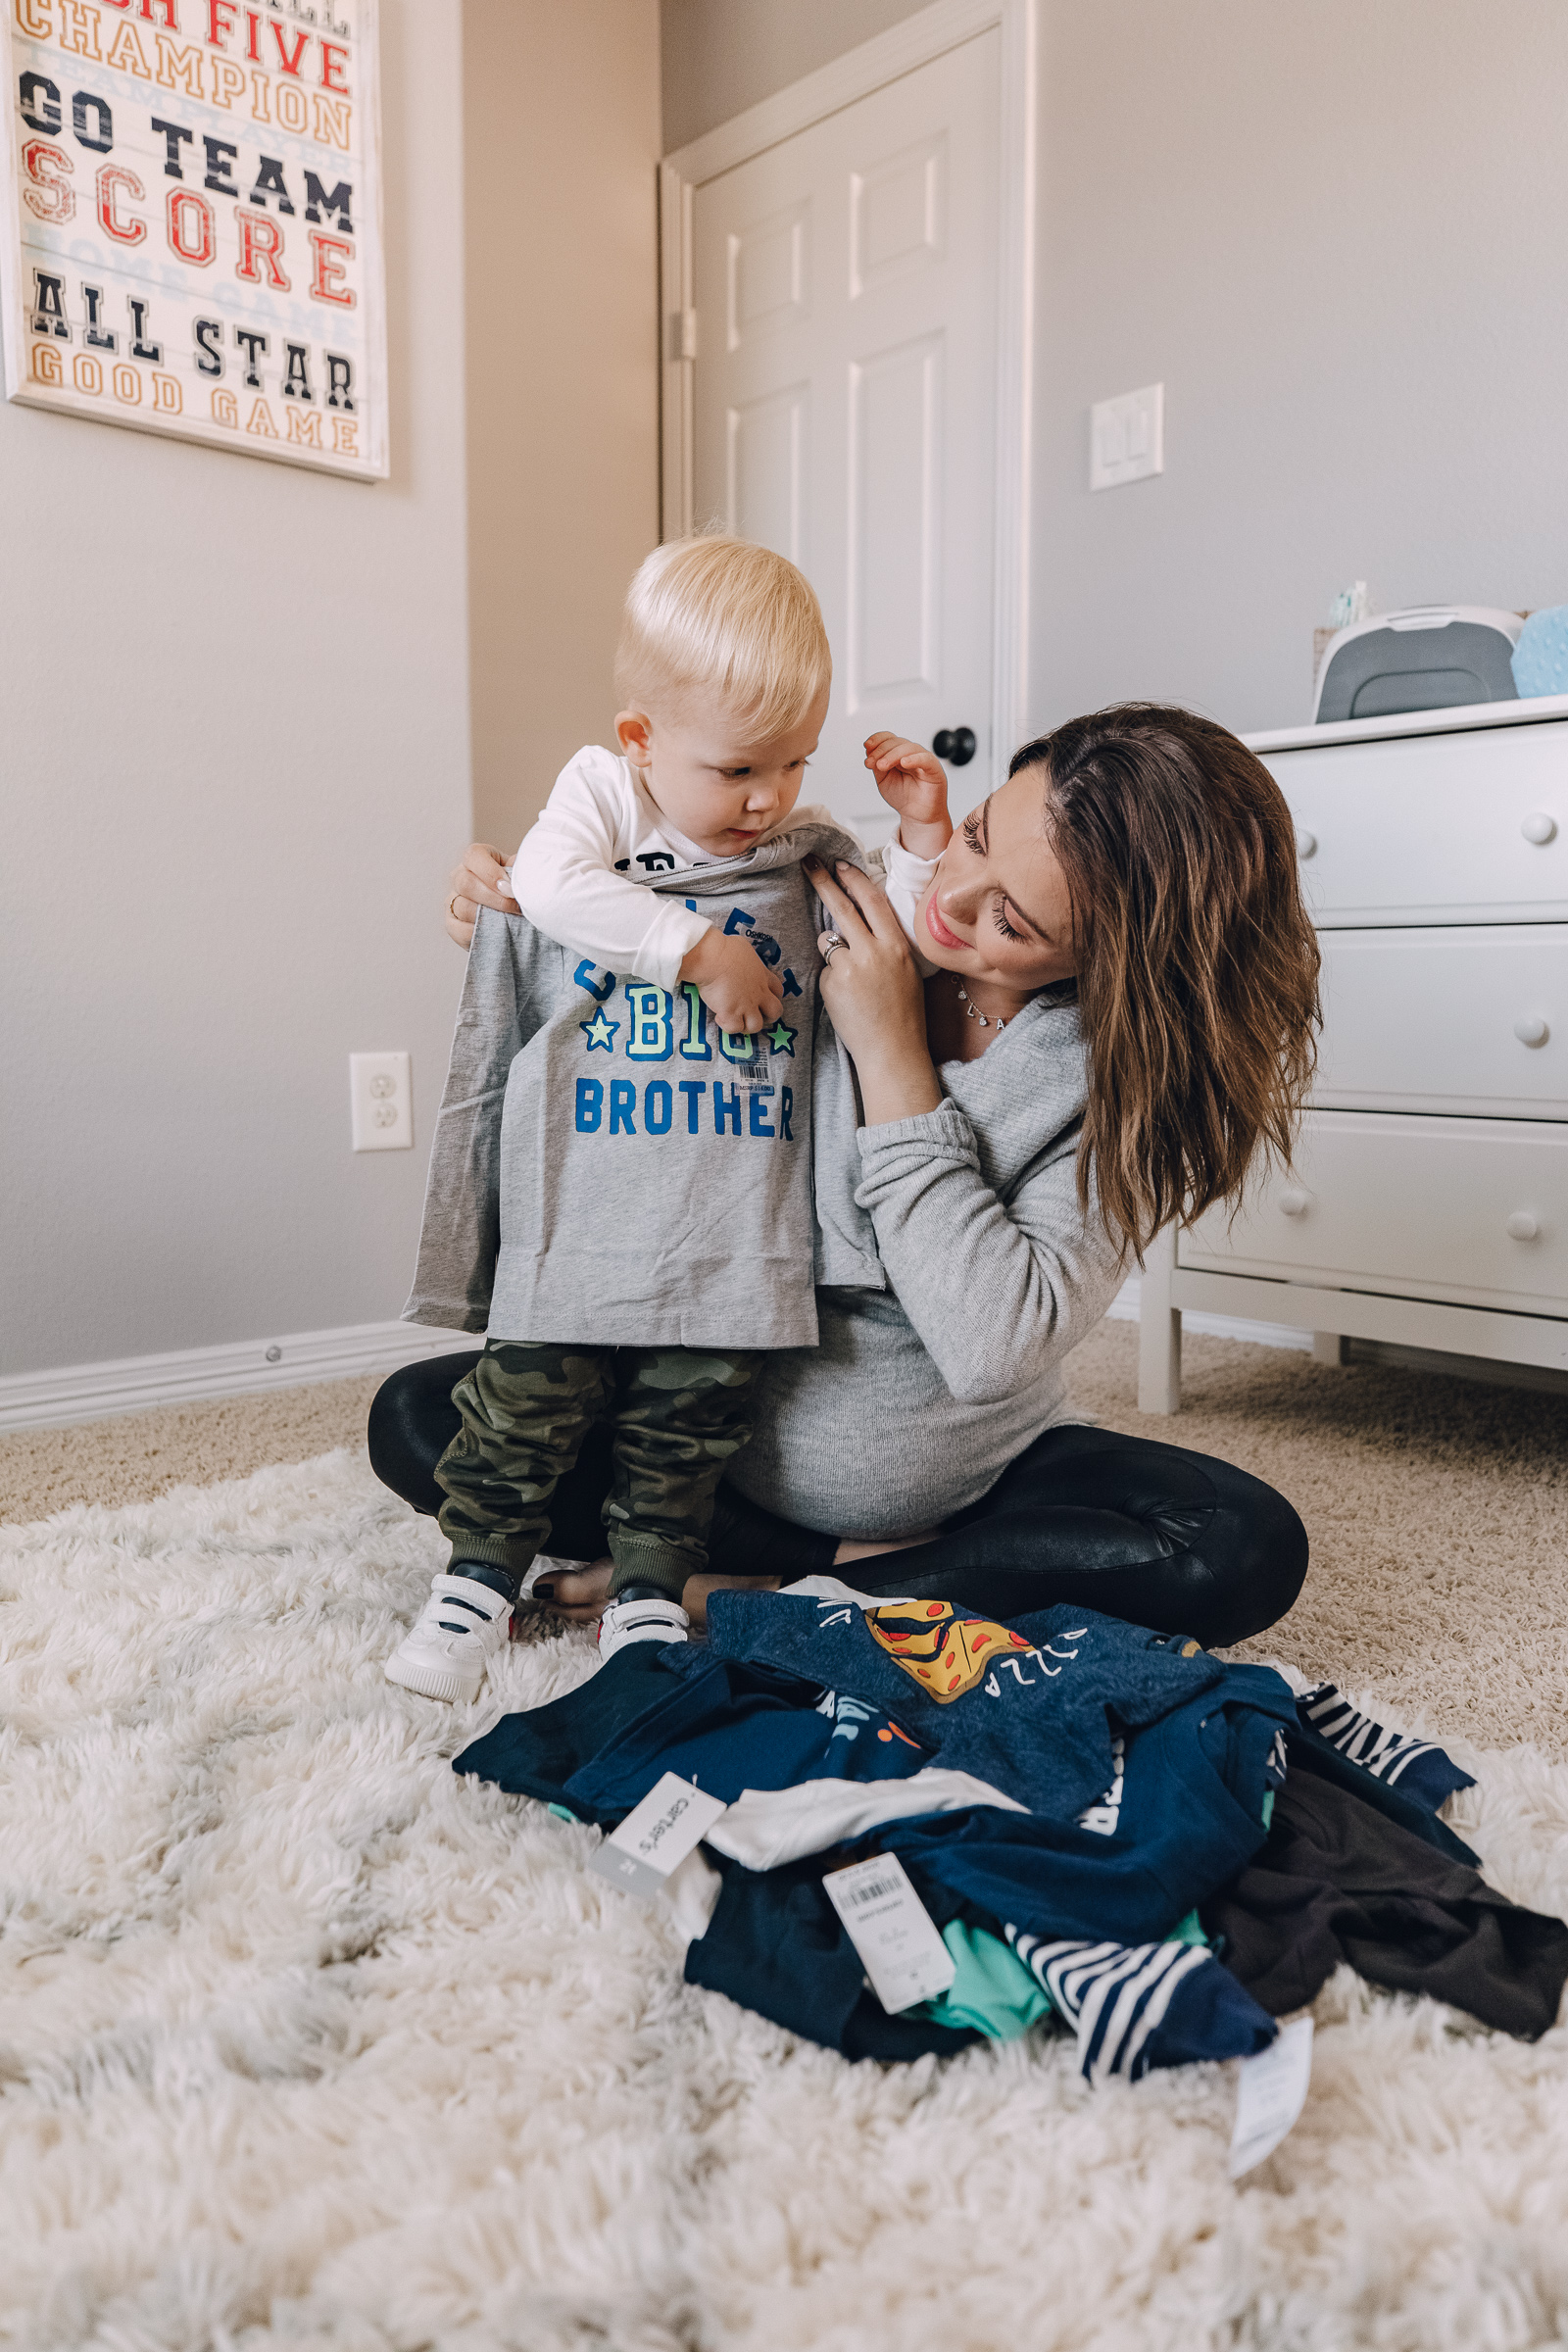 Looking for ideas where to shop for Toddler Clothing but not break the bank? Elly Brown shares where she loves to shop and get the most for your money!